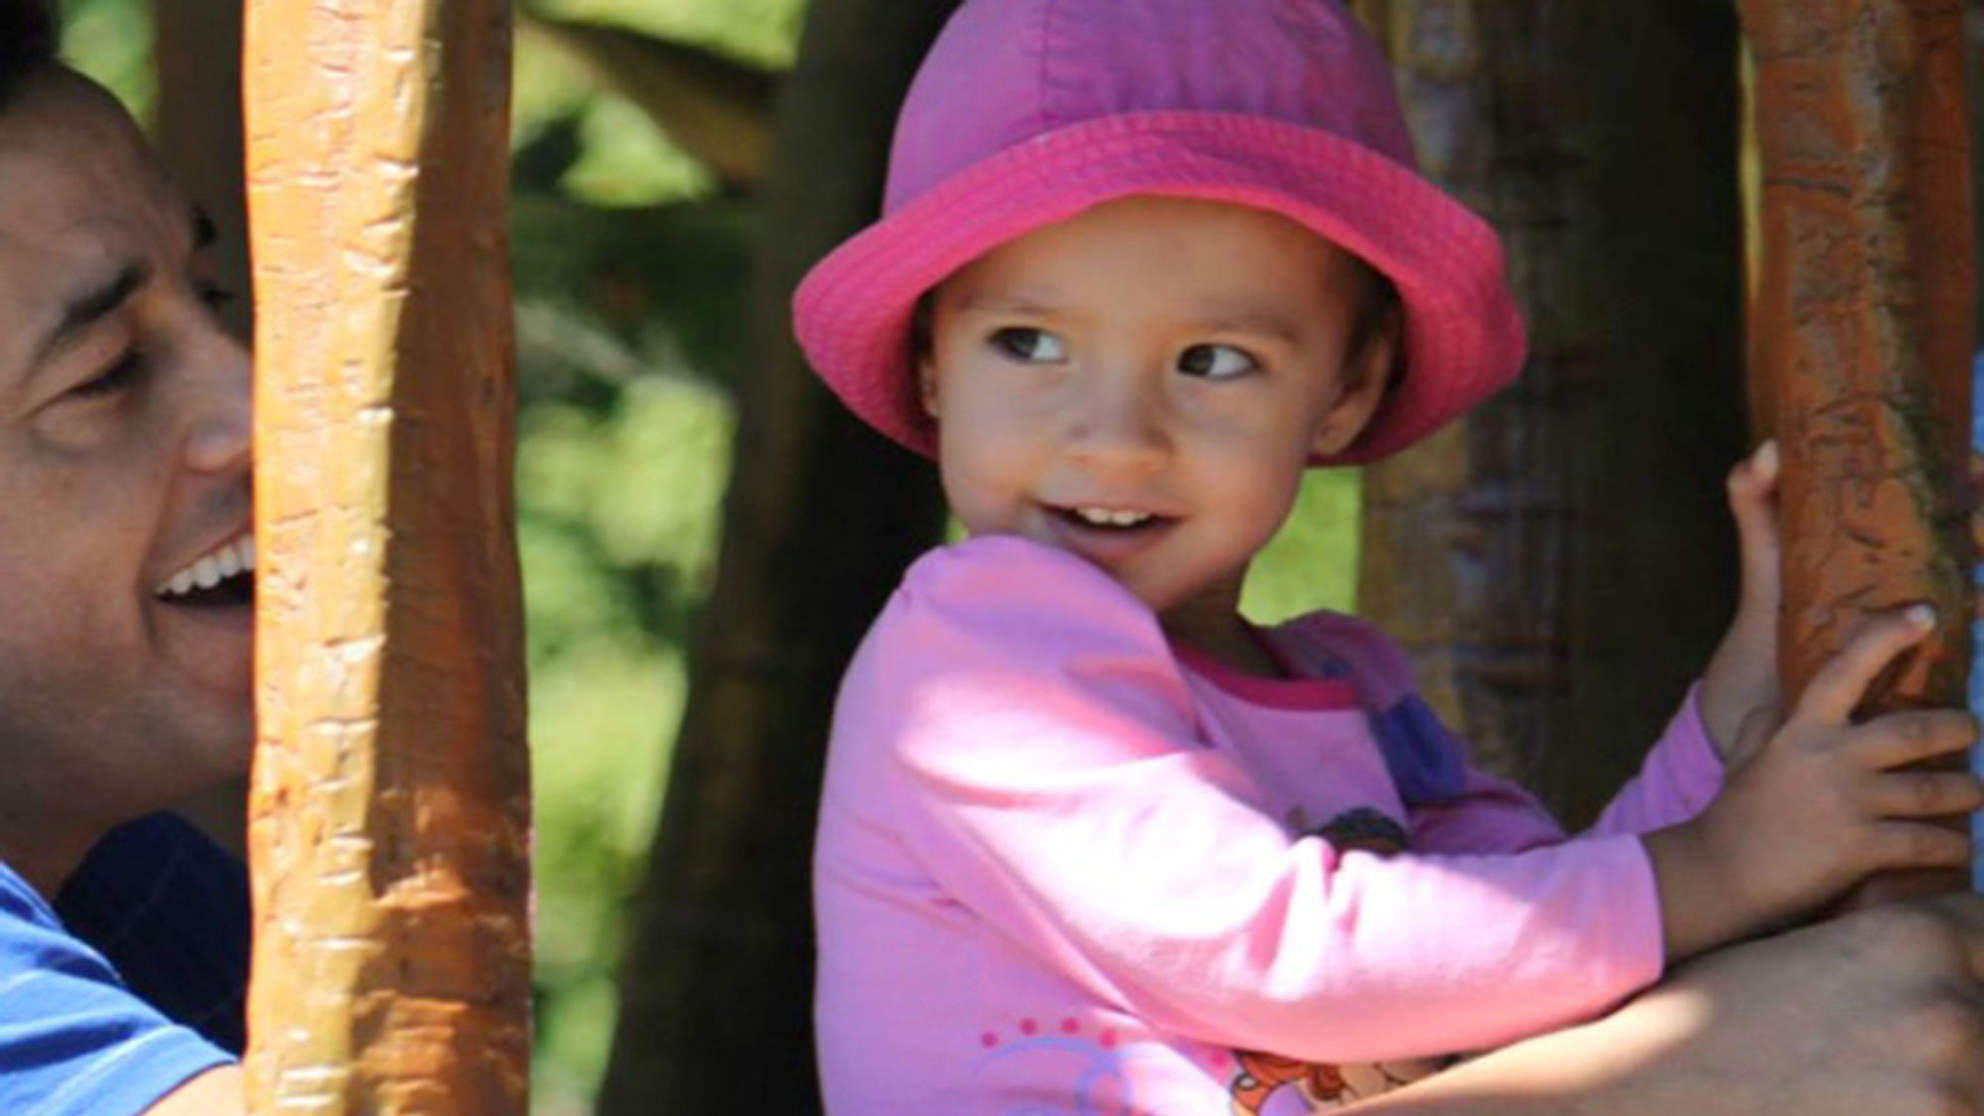 5-Year-Old Cancer Survivor Run Over and Killed on Eve of Her Anniversary of Finishing Chemo